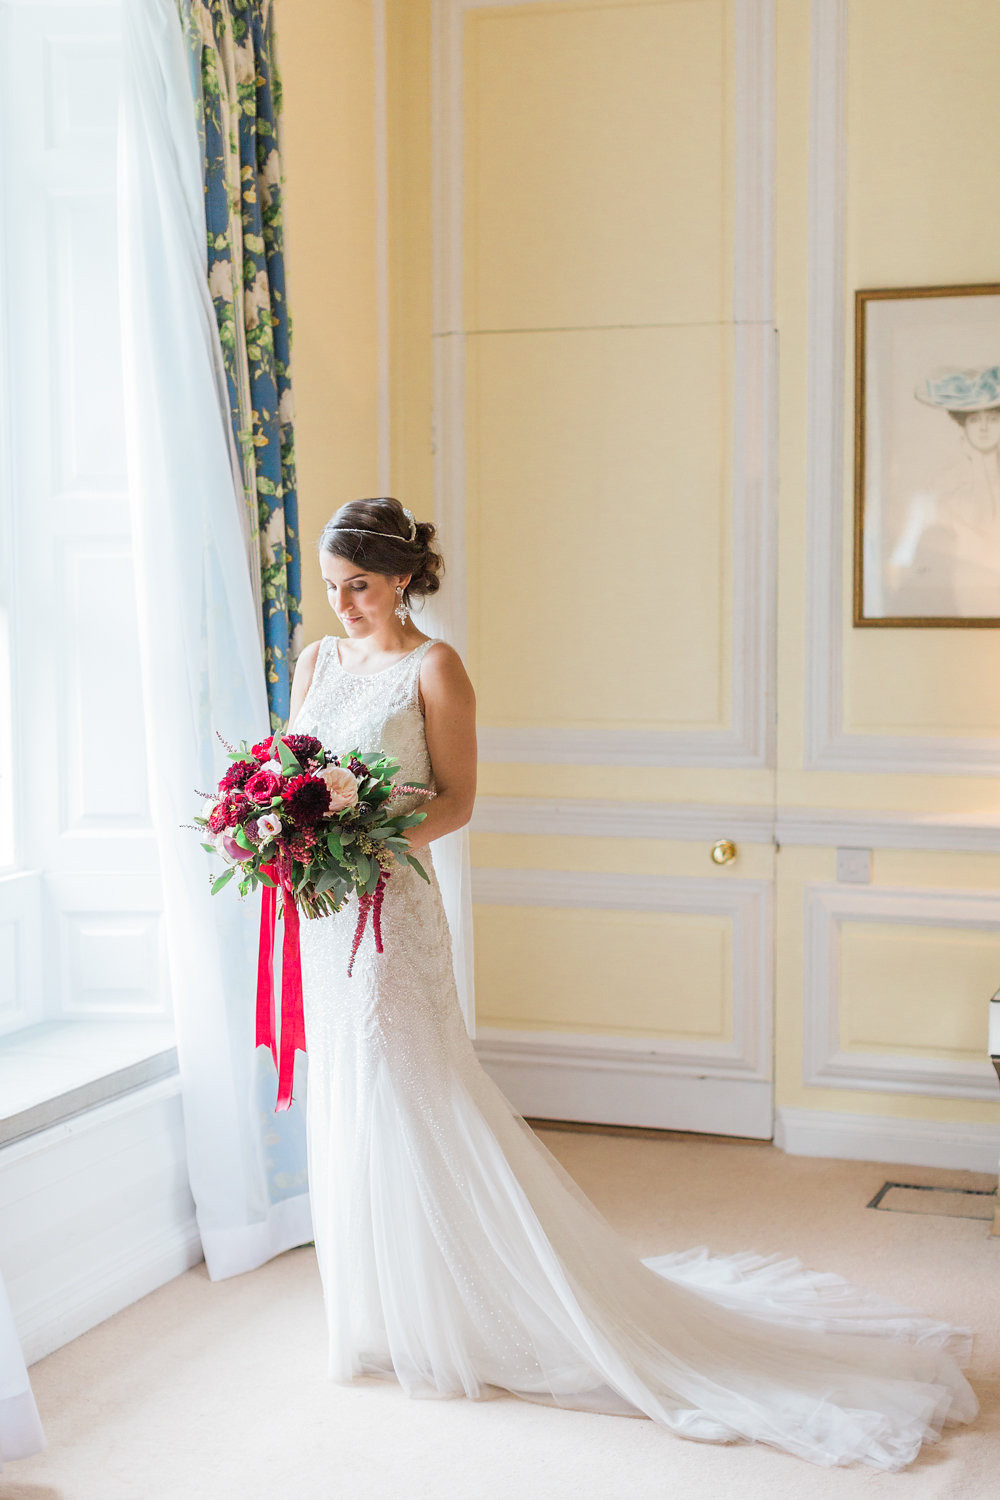 Dark red  and blush pink loose textured Bridal Bouquet at Eshott Hall Wedding in Northumberland. Image by Katy Melling